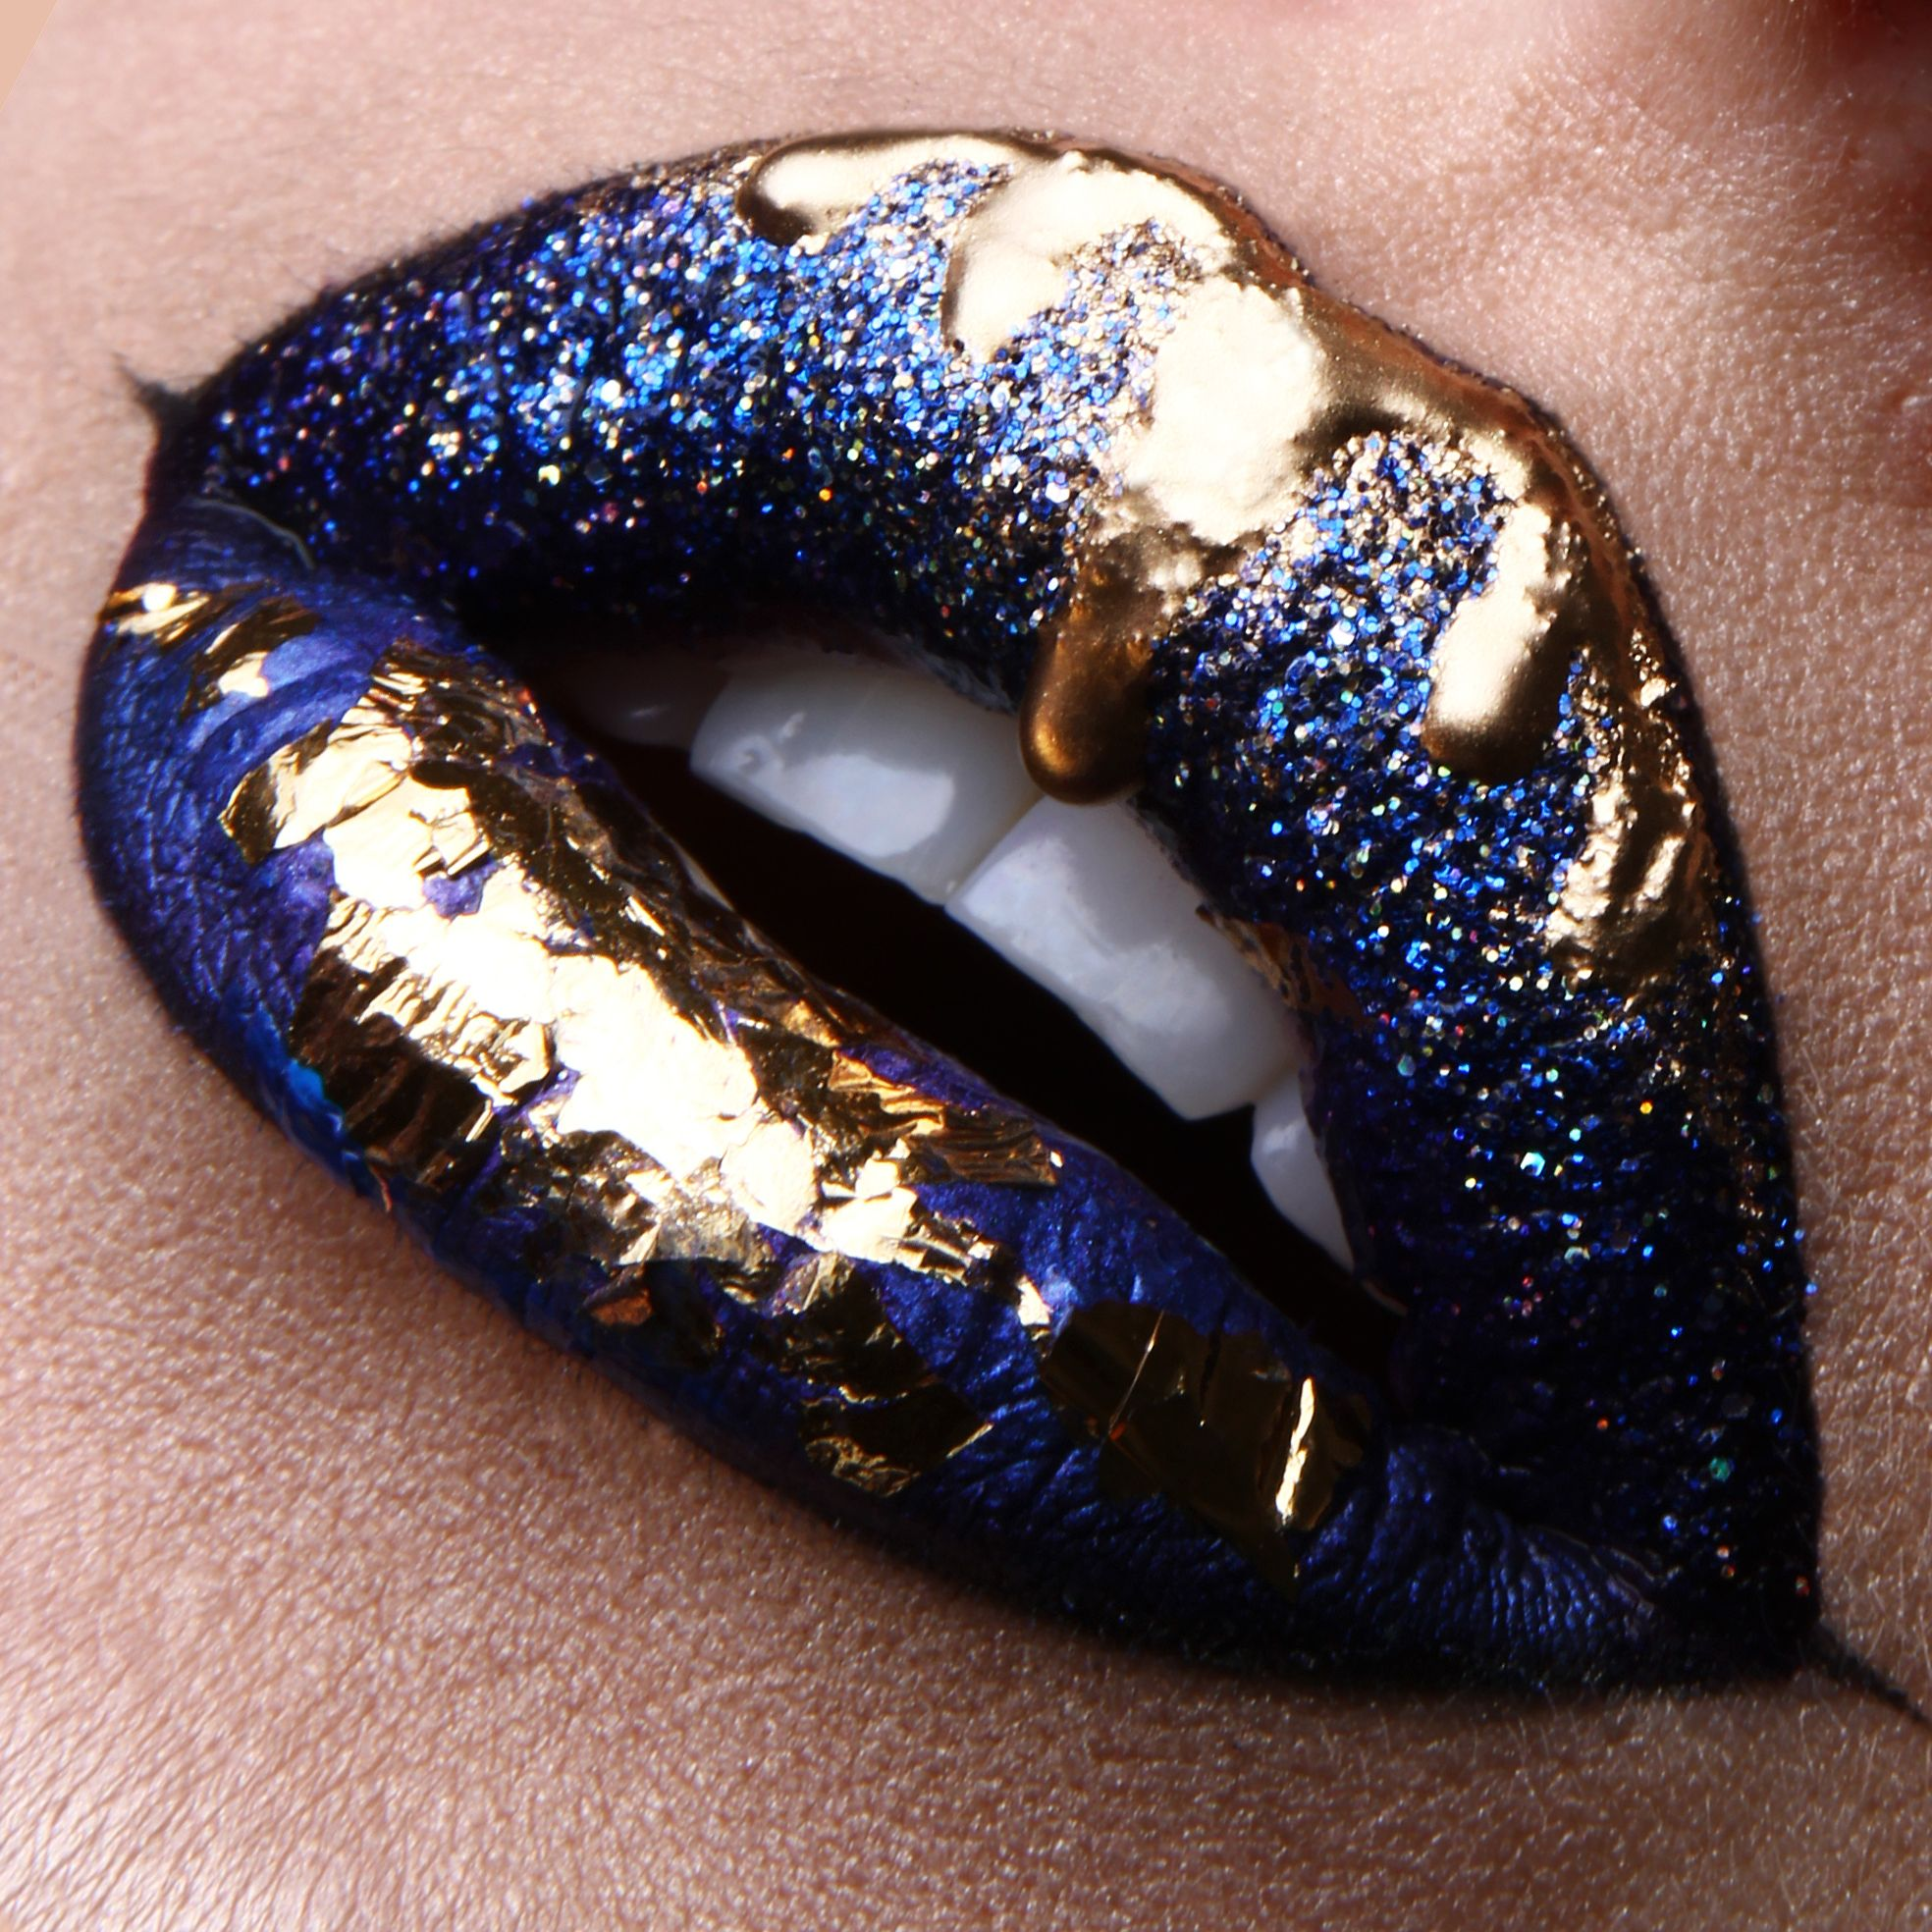 Schöne Lippen Schminken Pinterest Vladamua Lip Art Dripping Gold Instagram